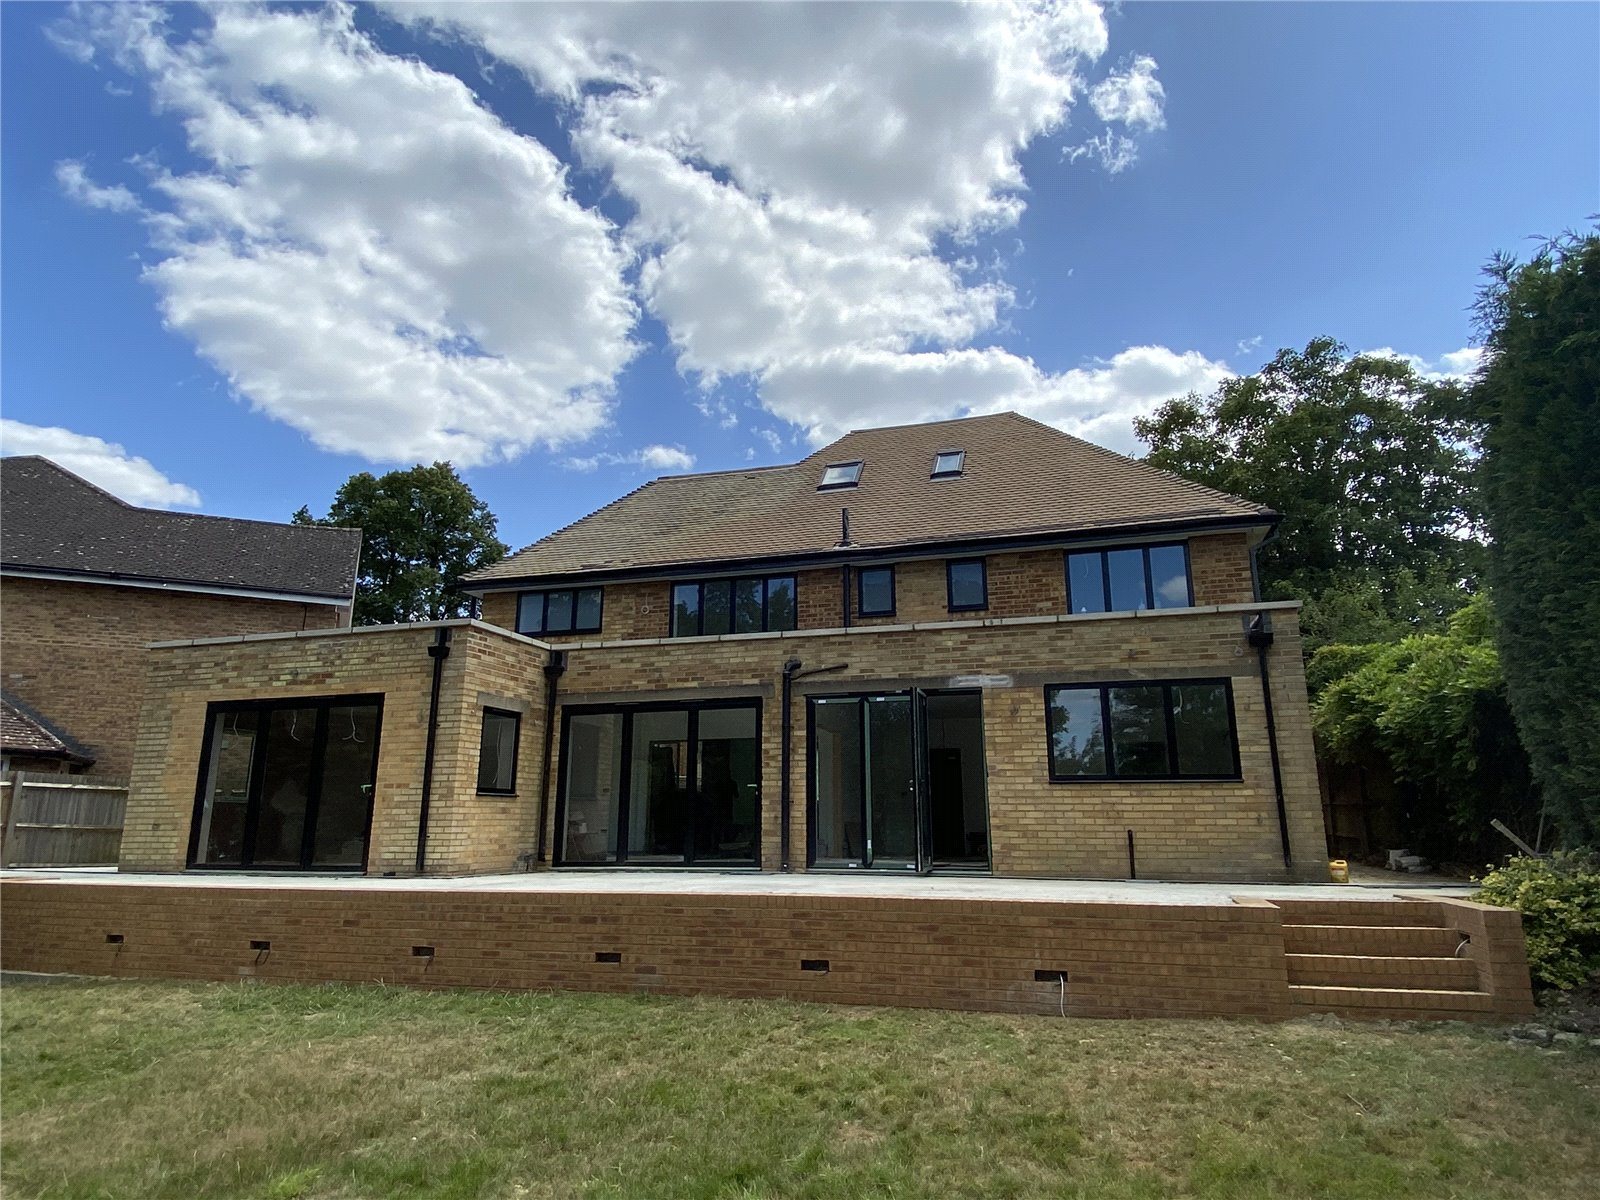 5 bed house for sale in Edgware, HA8 8DQ - Property Image 1